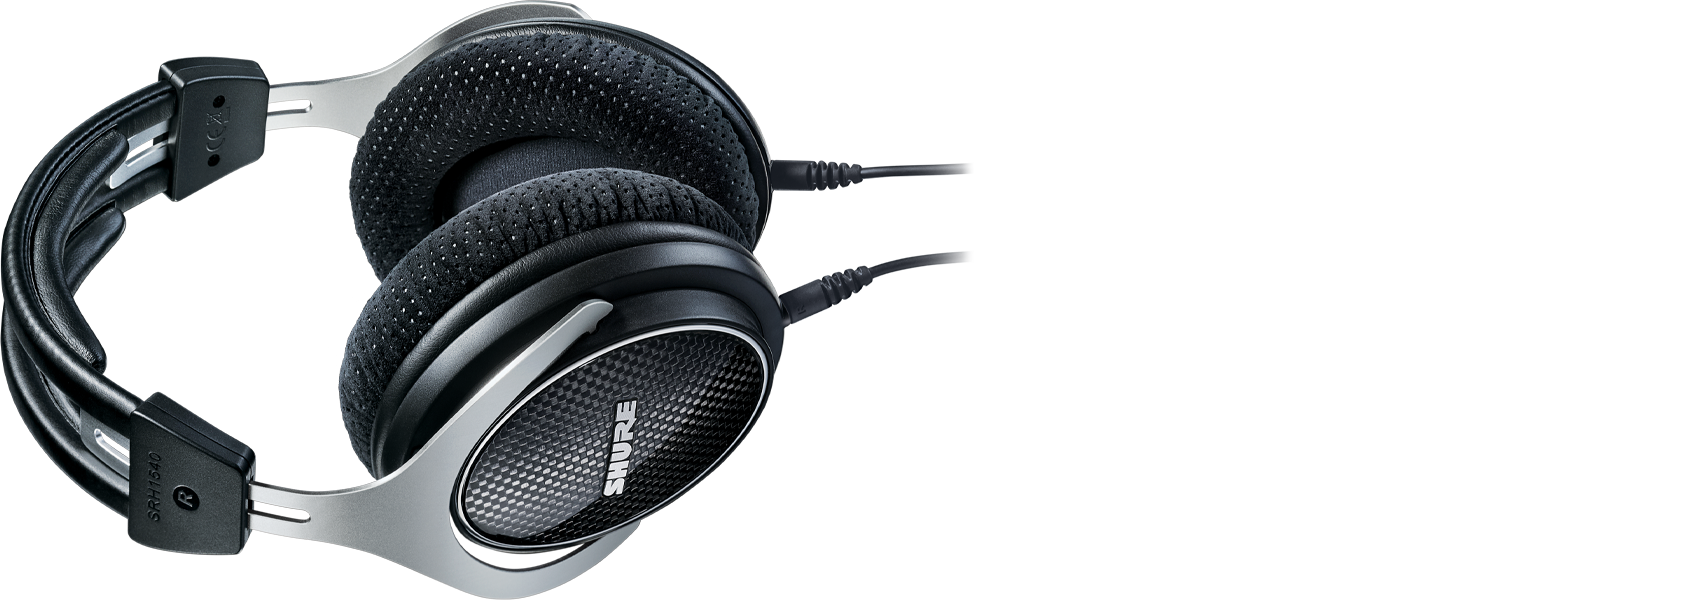 Illustration Shure SRH1540 Premium closed-back Headphones